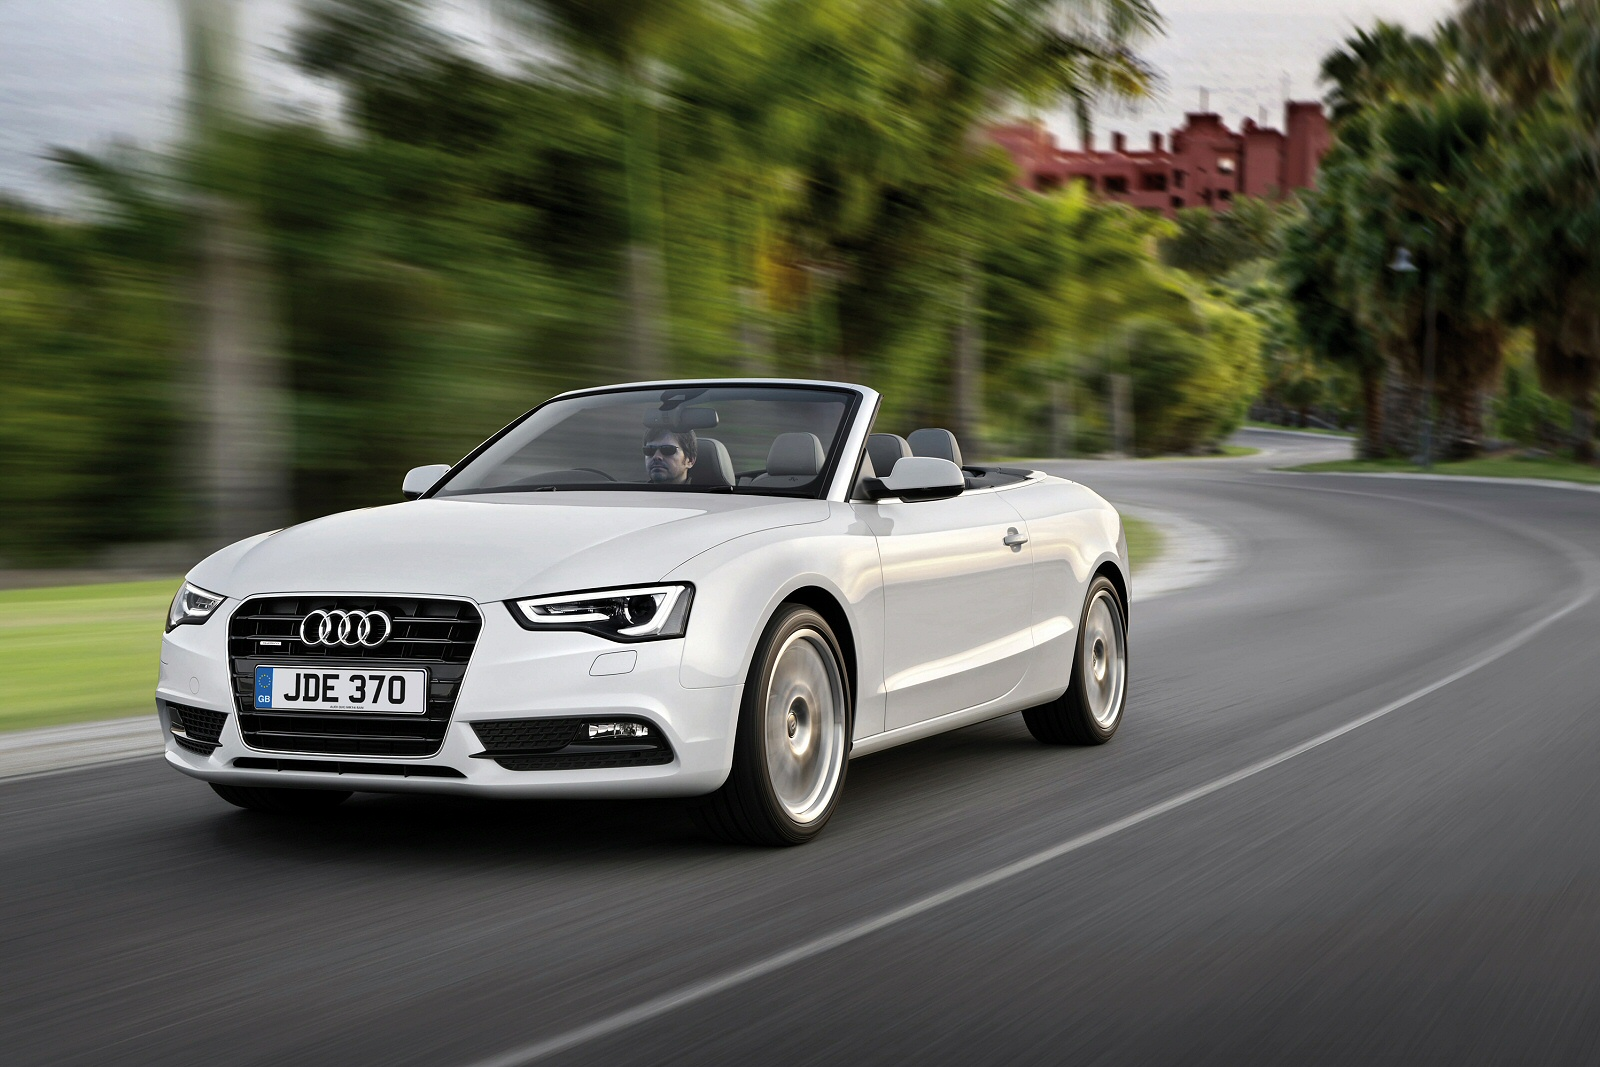 new audi a5 s5 quattro 2dr tiptronic petrol coupe for sale hereford audi. Black Bedroom Furniture Sets. Home Design Ideas